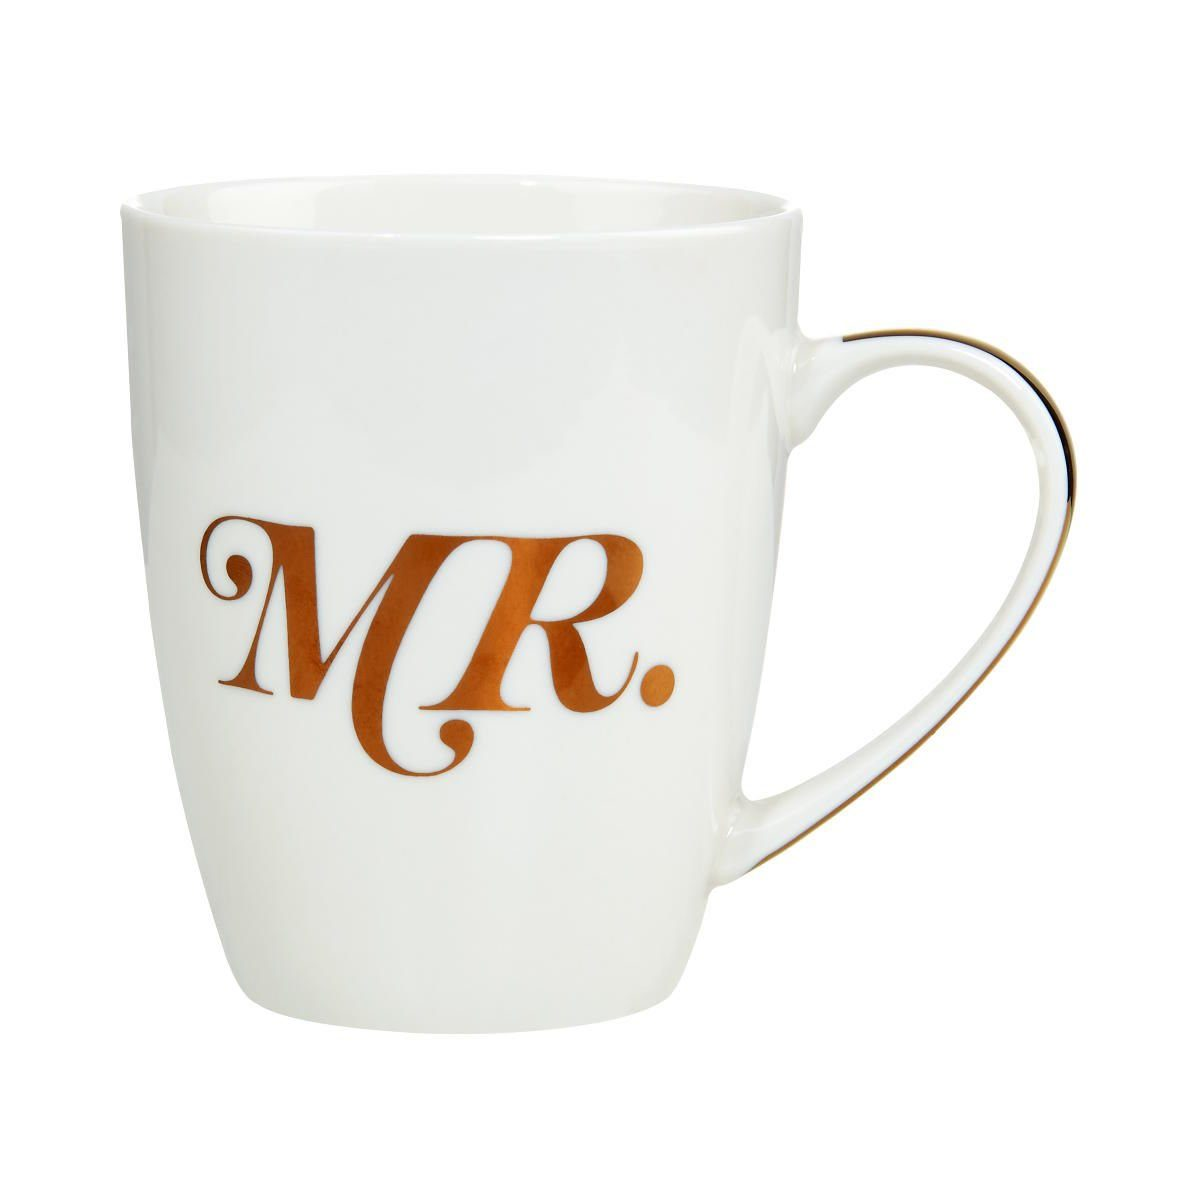 BUTLERS MR.& MRS. »Tasse Mr. mit goldenem Griff«